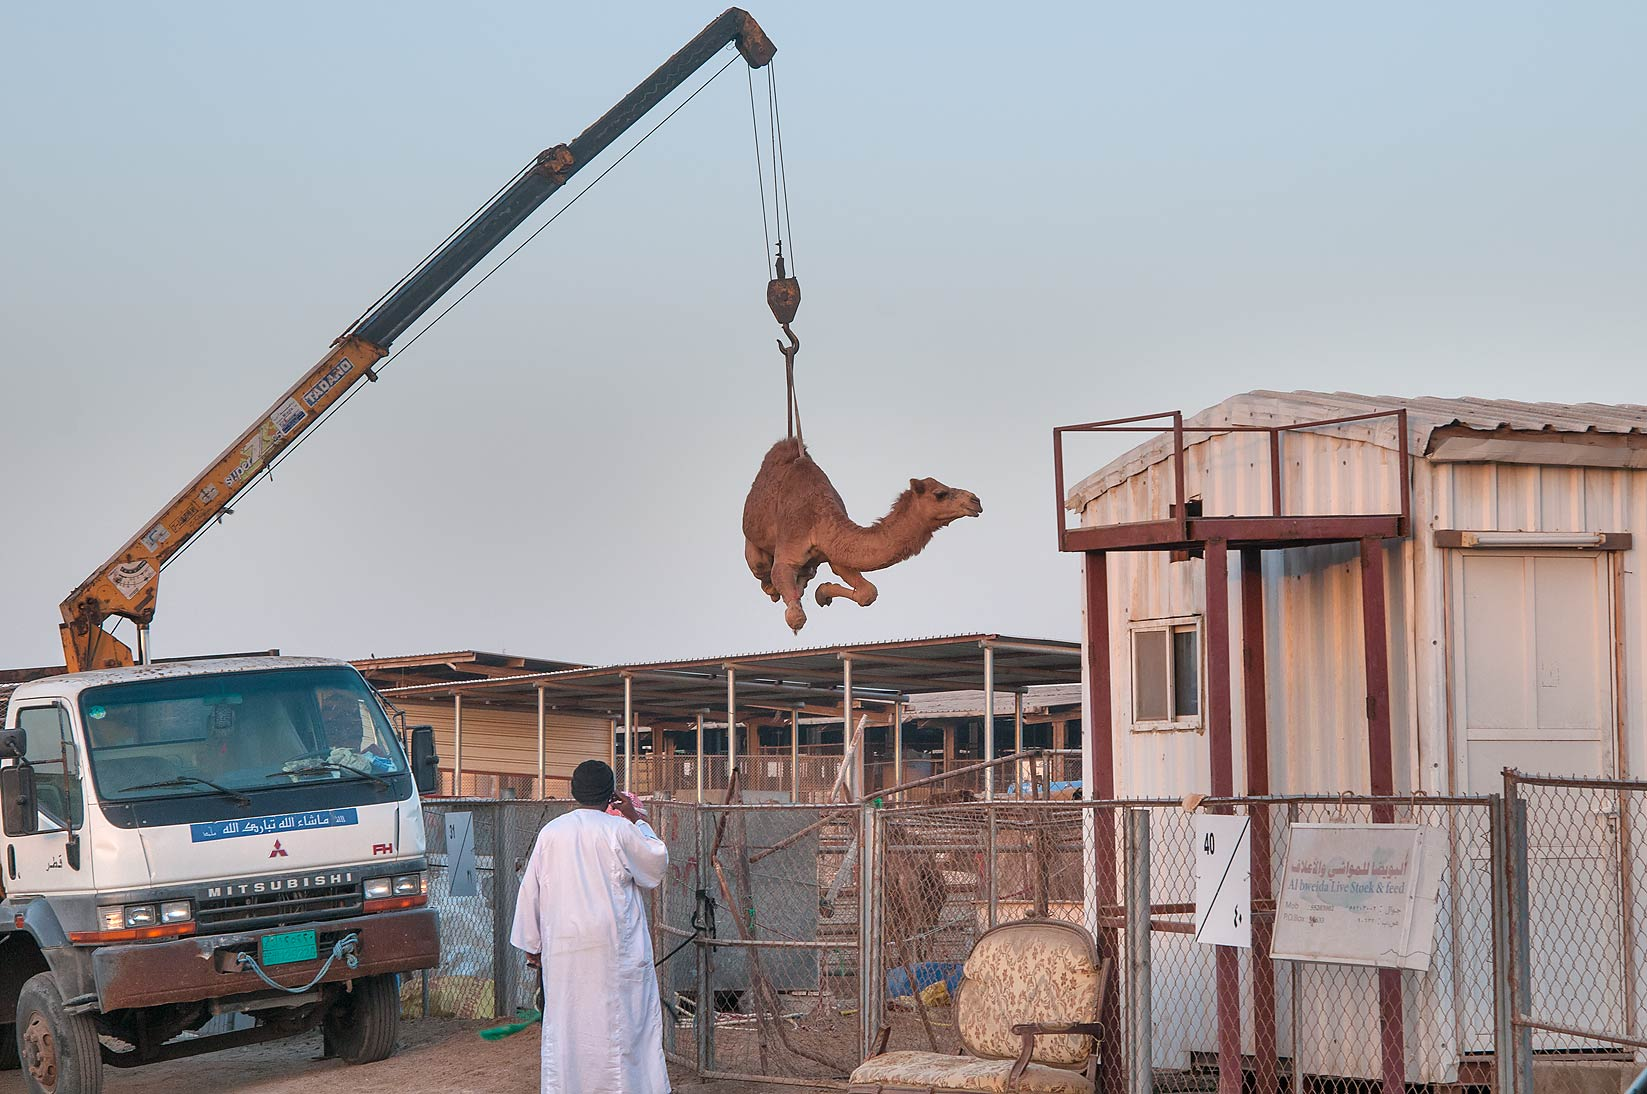 Loading a camel by crane on a truck in Camel...Wholesale Markets area. Doha, Qatar